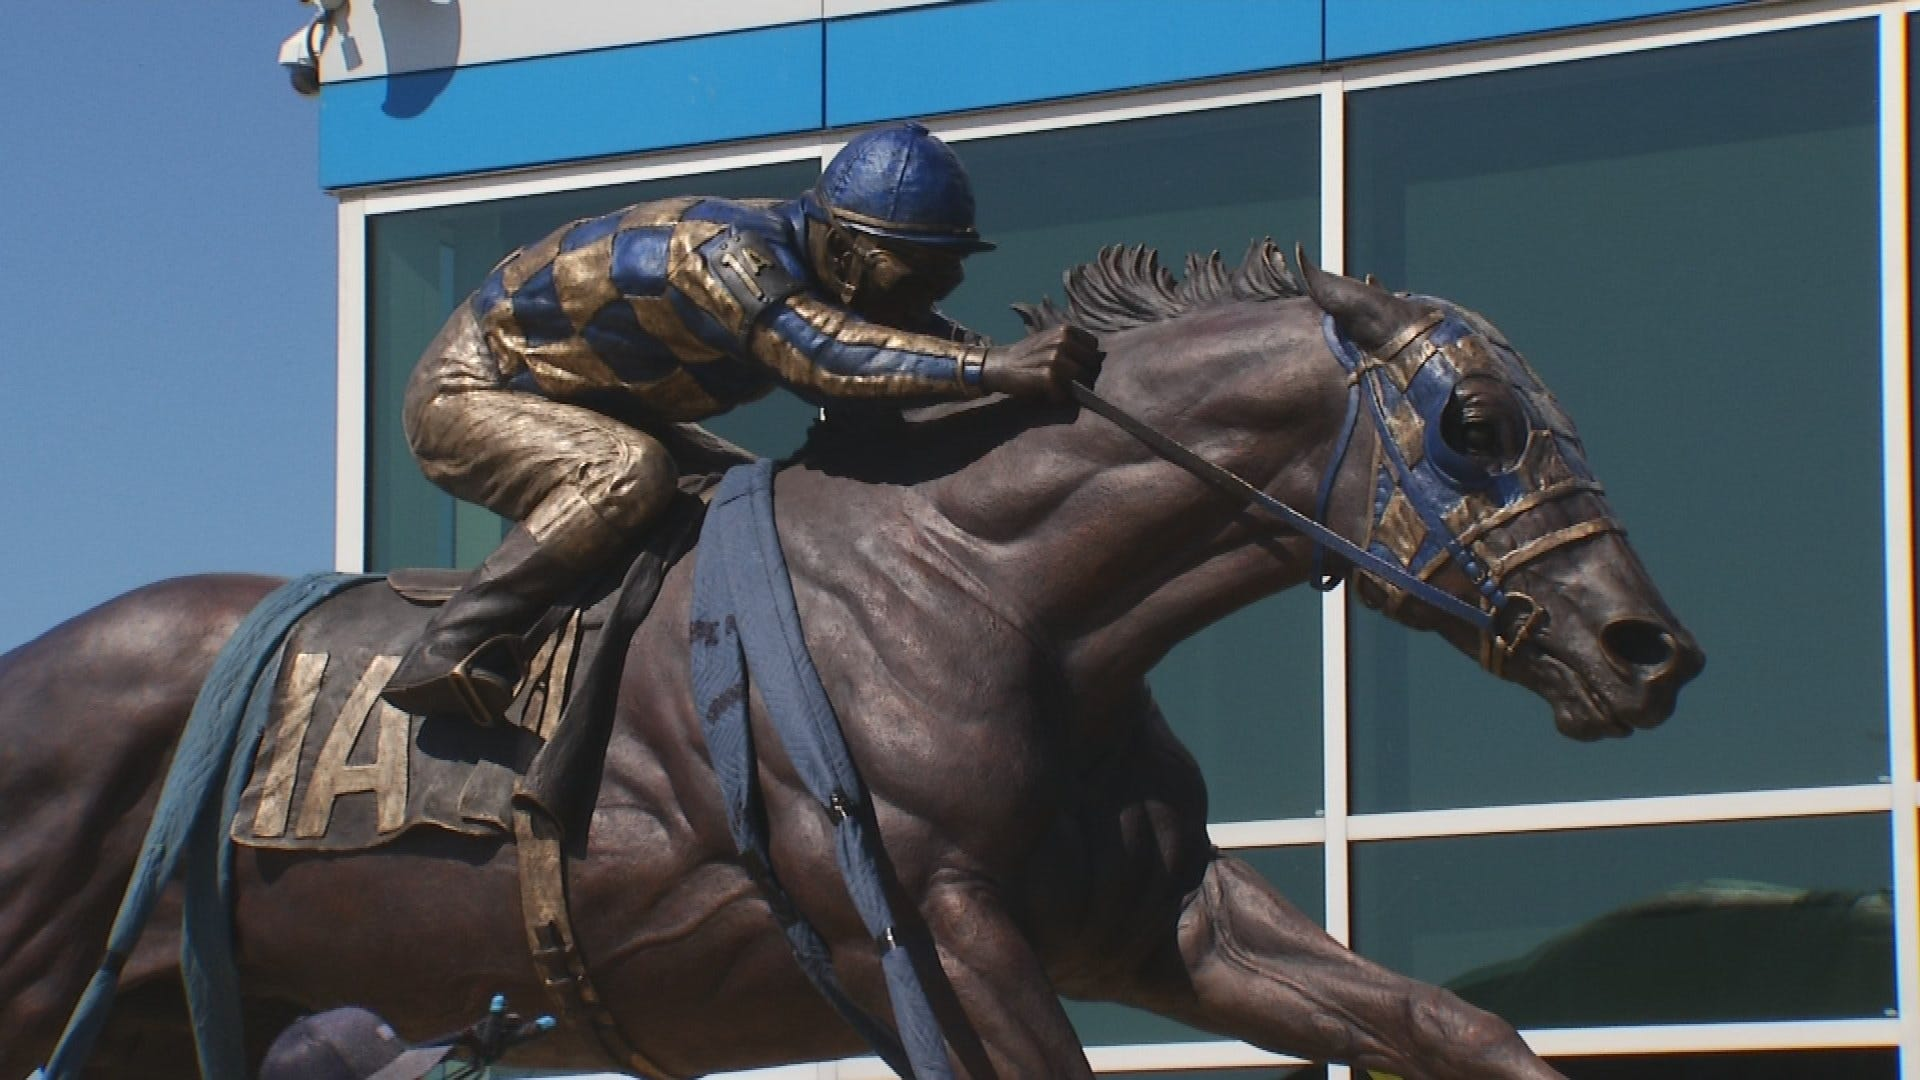 Sculptor Jocelyn Russell On Creating Amazing Secretariat Statue